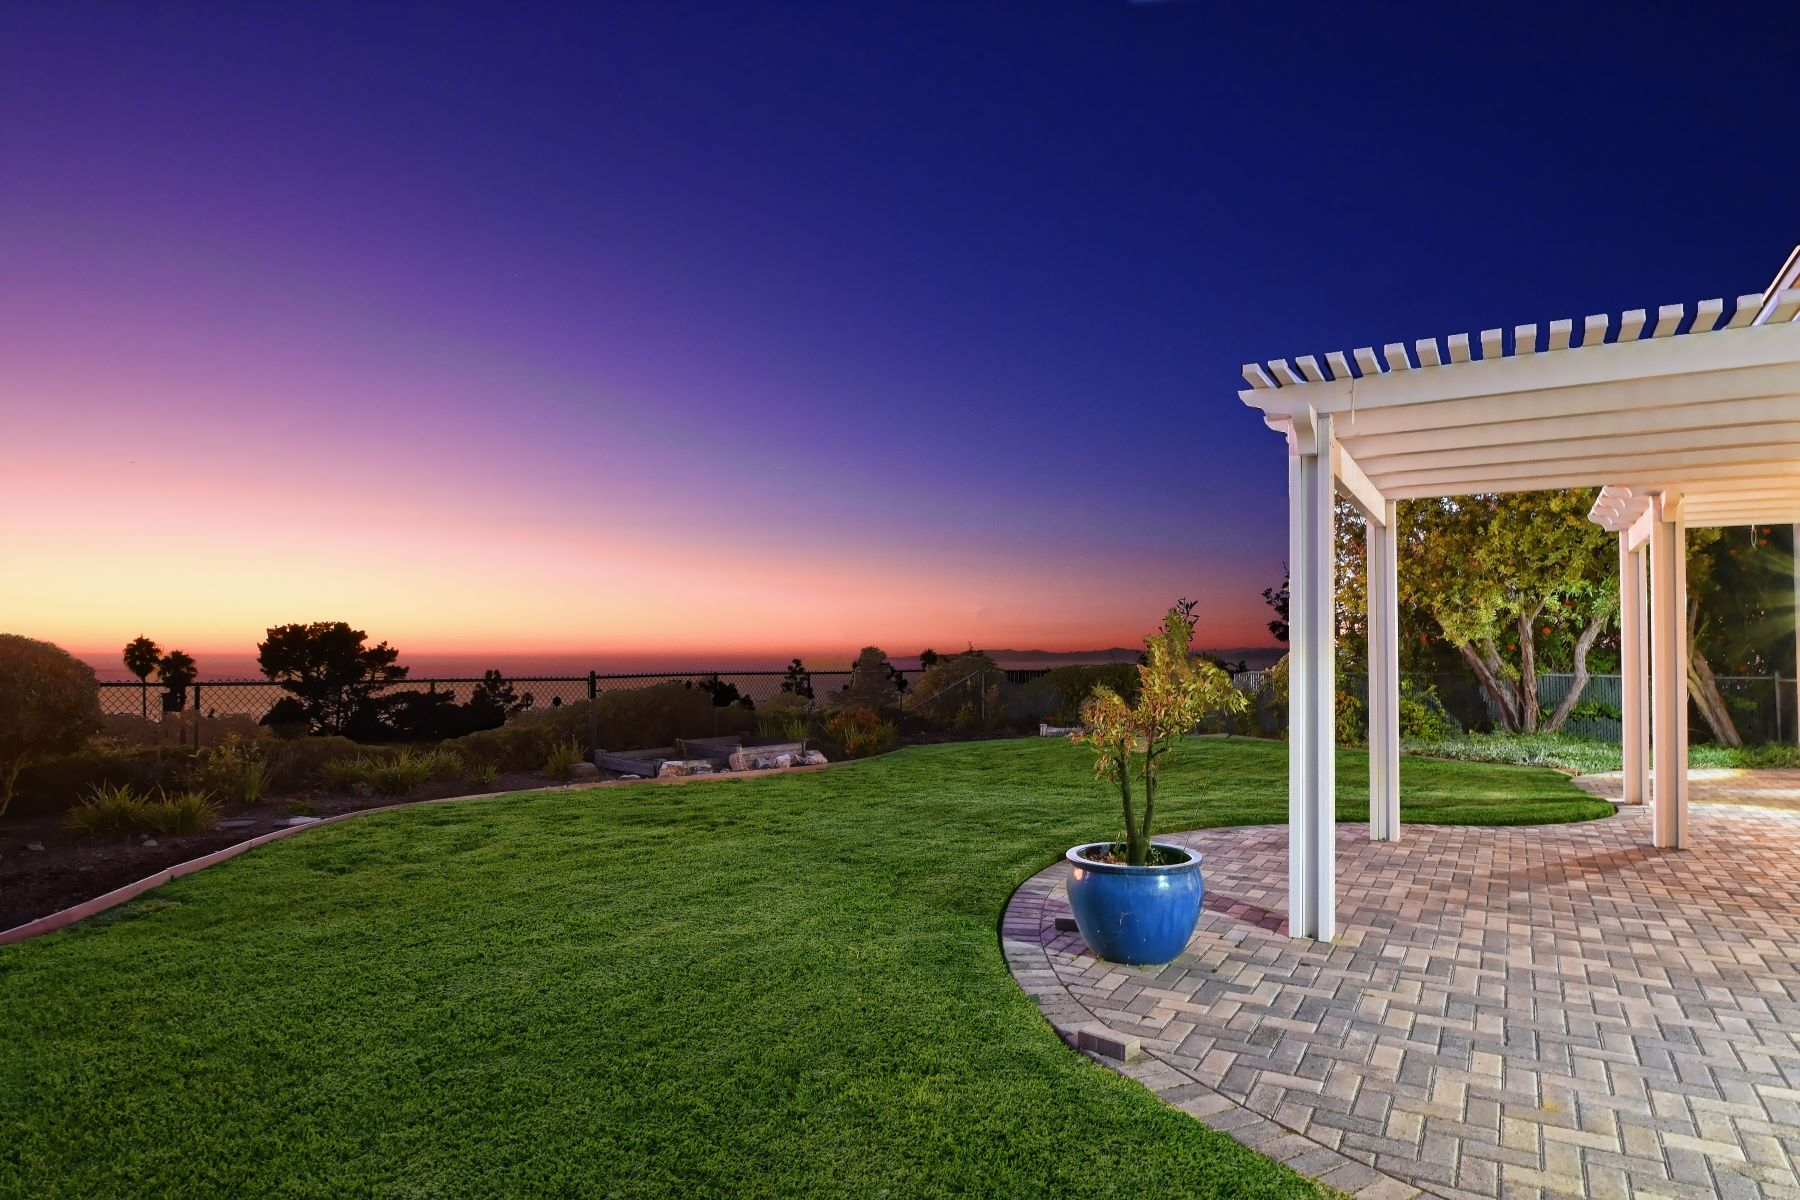 Single Family Homes for Sale at 28855 Geronimo Drive, Rancho Palos Verdes, CA 90275 28855 Geronimo Drive Rancho Palos Verdes, California 90275 United States